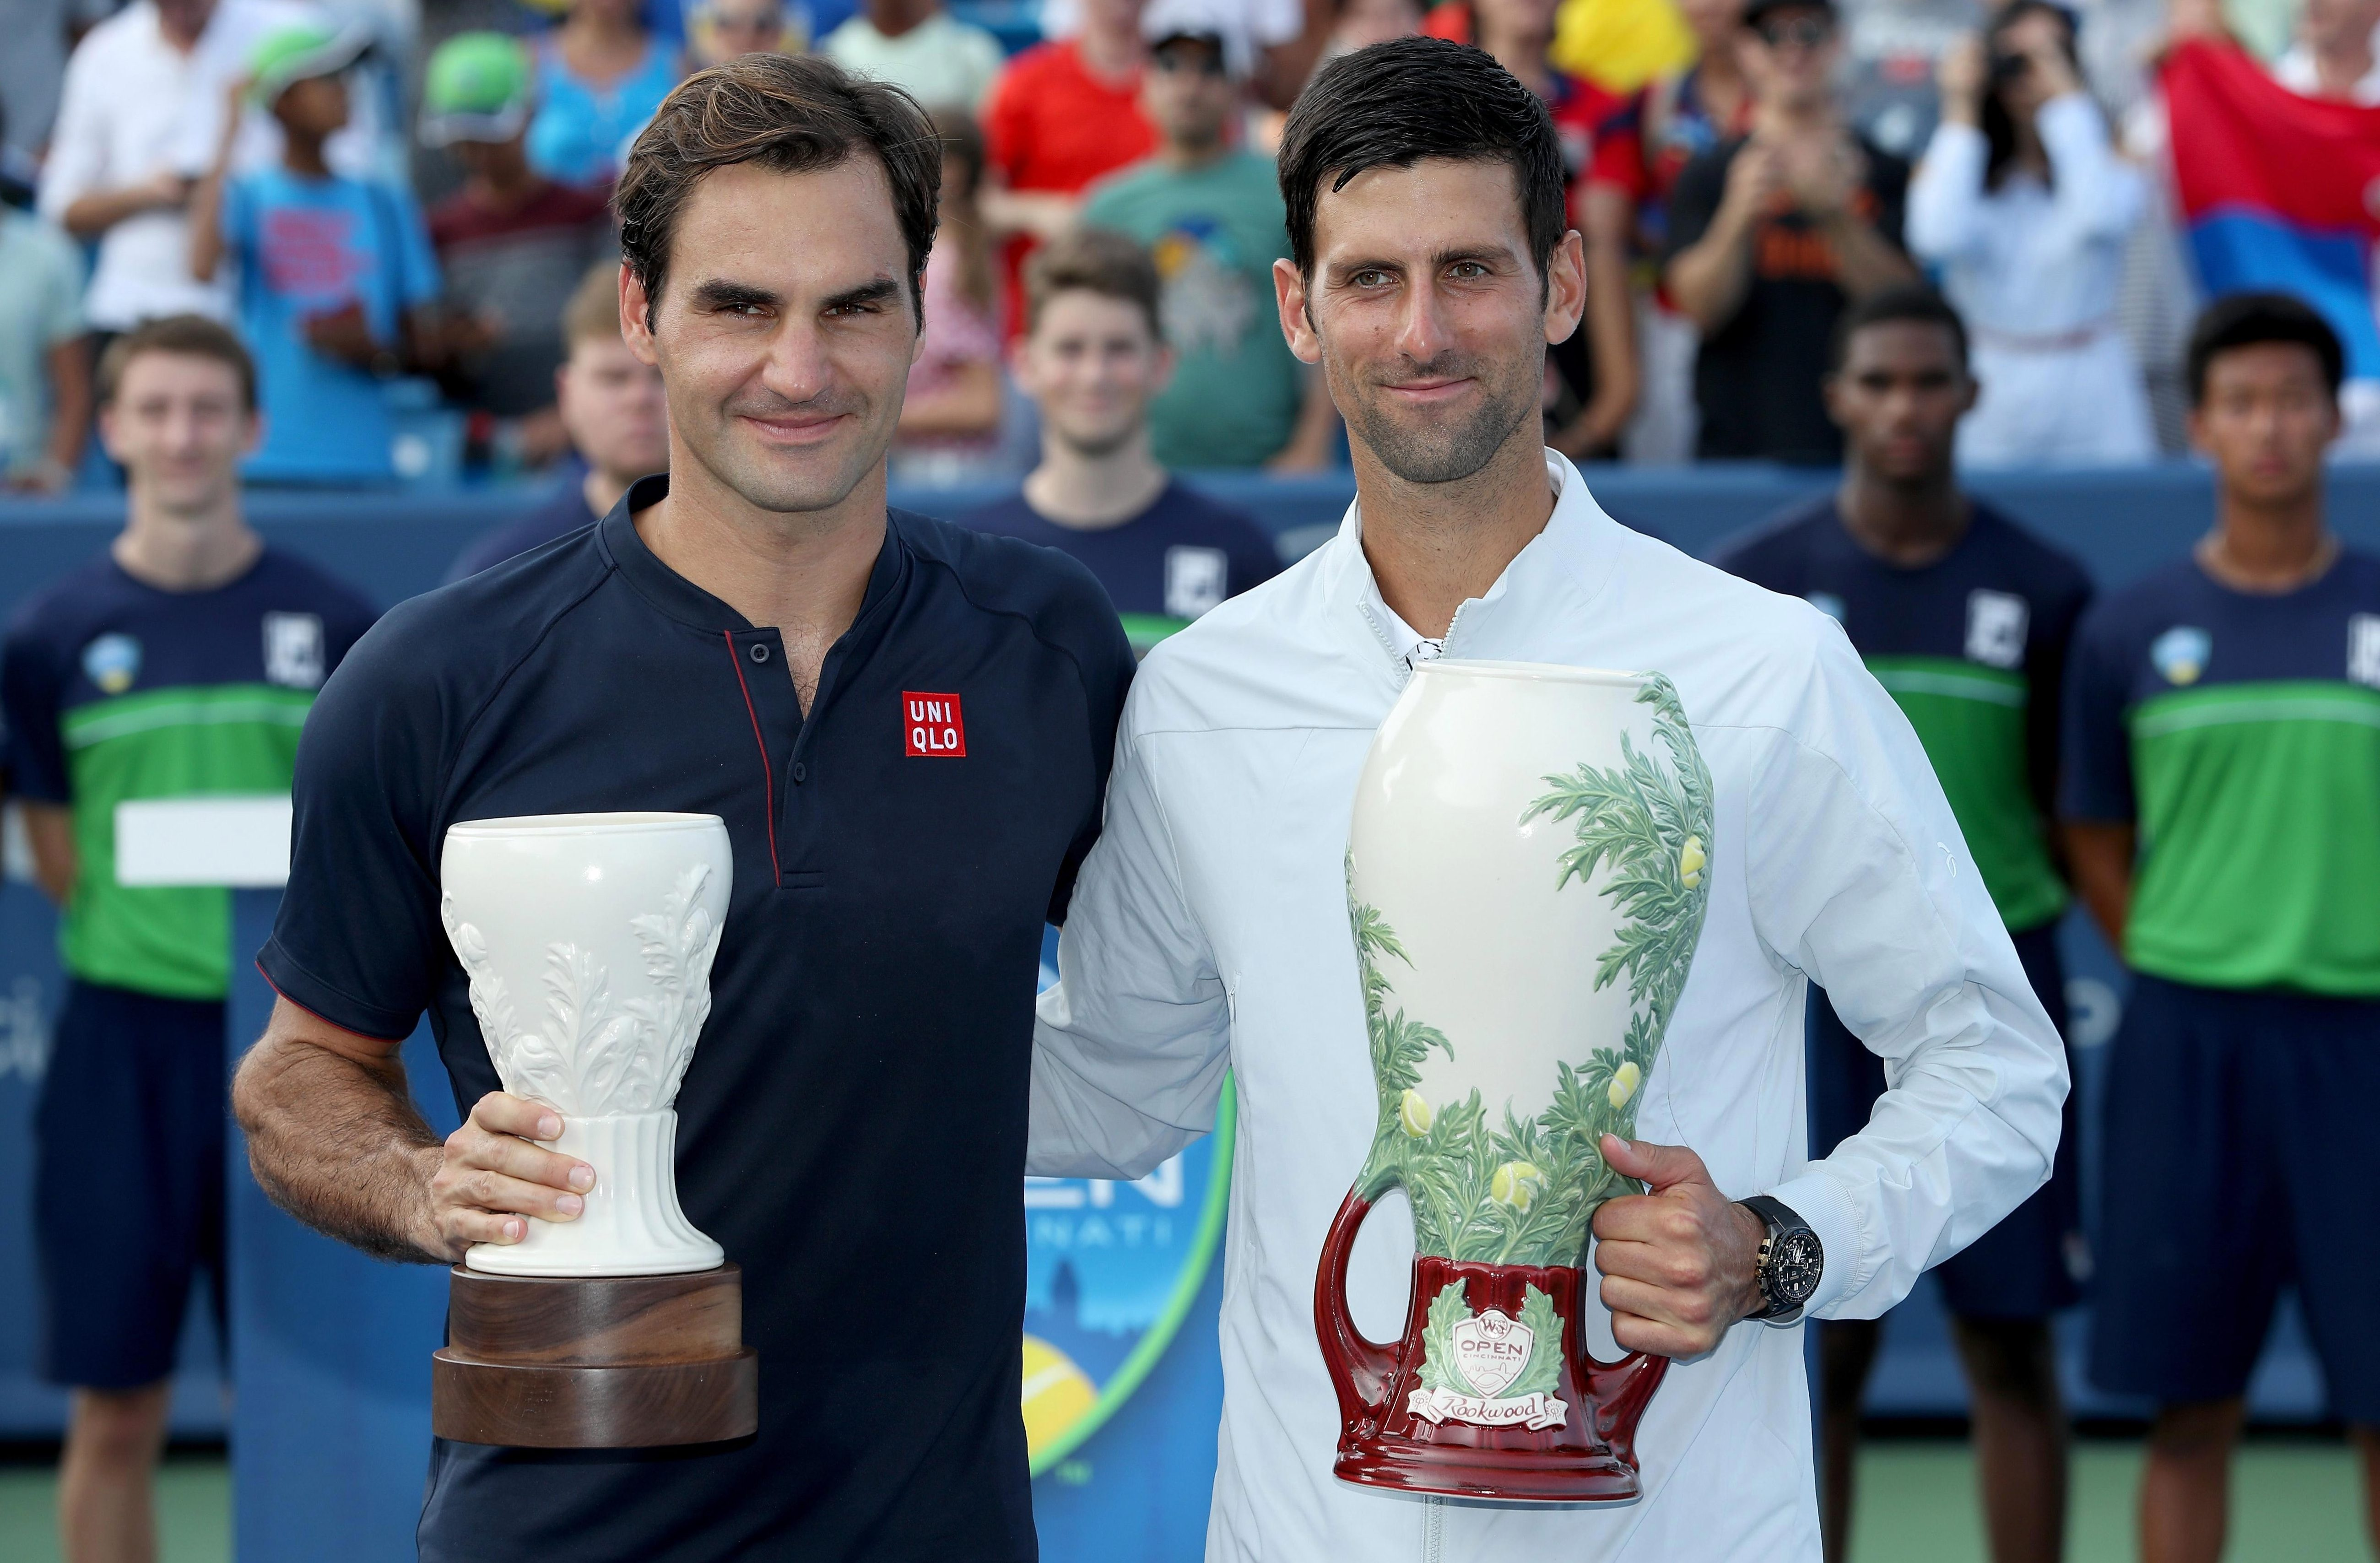 Novak Djokovic leads the way with 31 Masters titles and became the first player to win all nine when he beat Roger Federer in Cincinnati this week